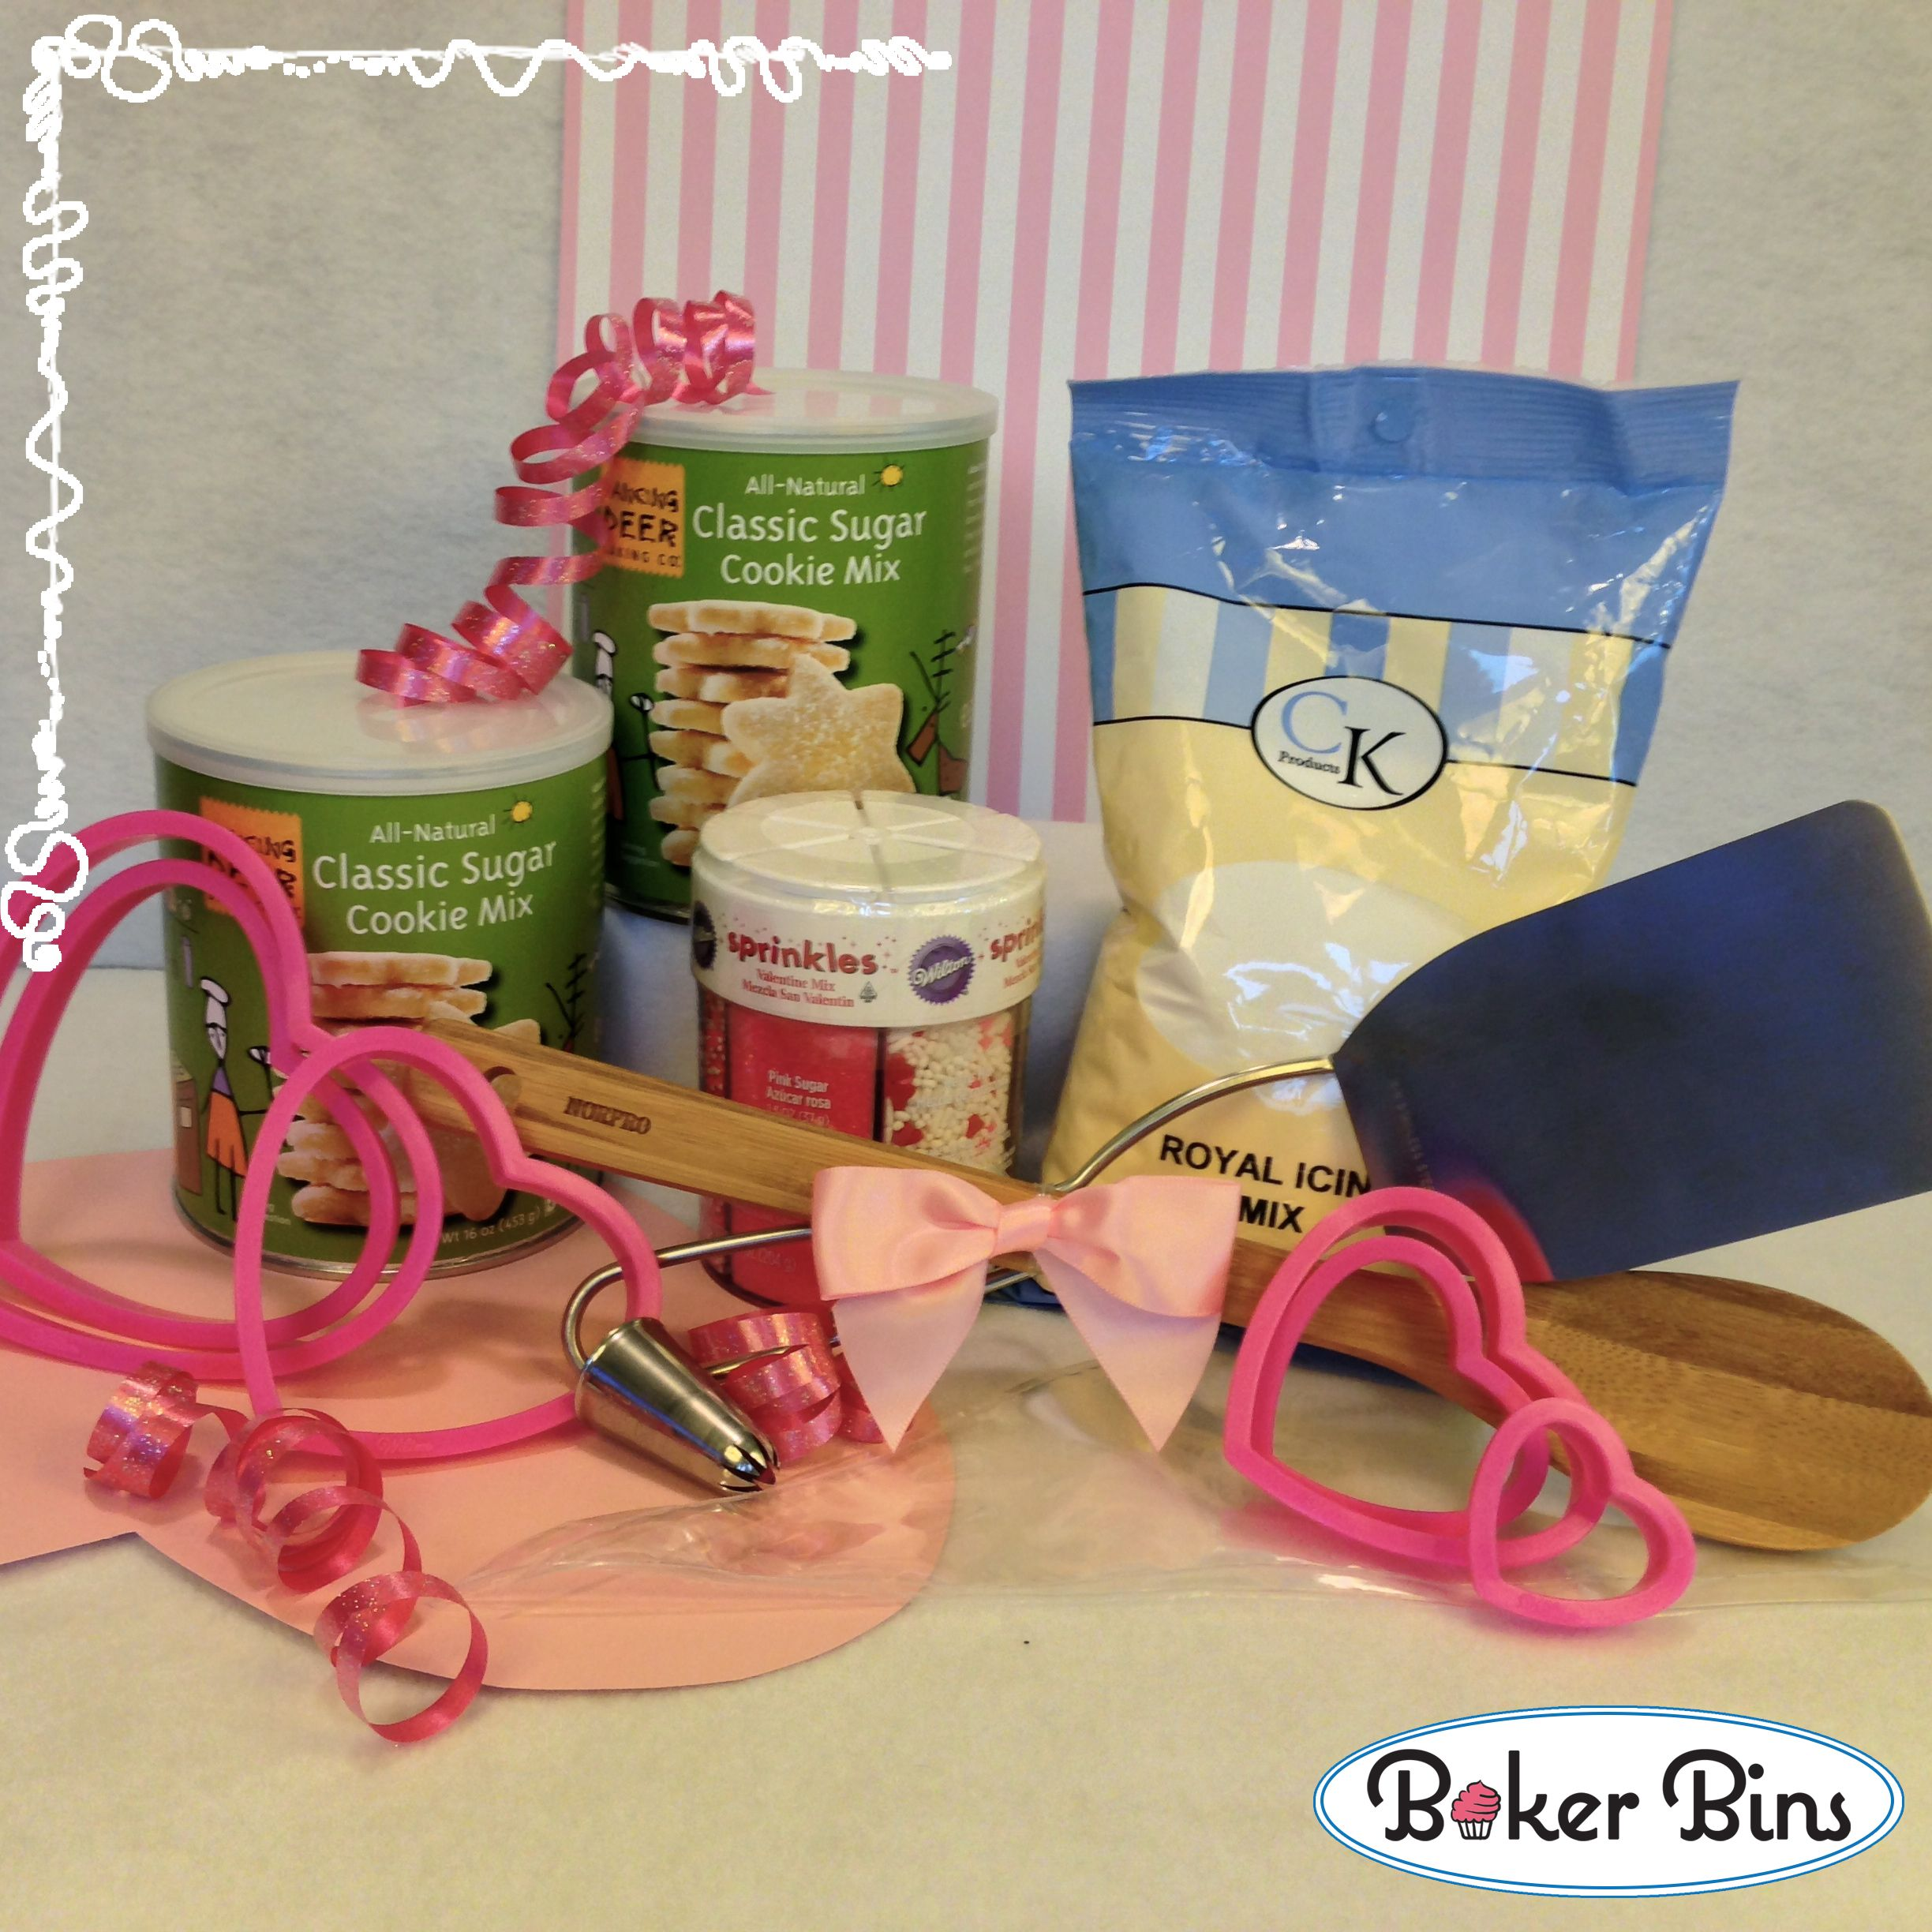 Fun new baking kits just in time for valentines day baker bins fun new baking kits just in time for valentines day baker bins has gluten free negle Gallery